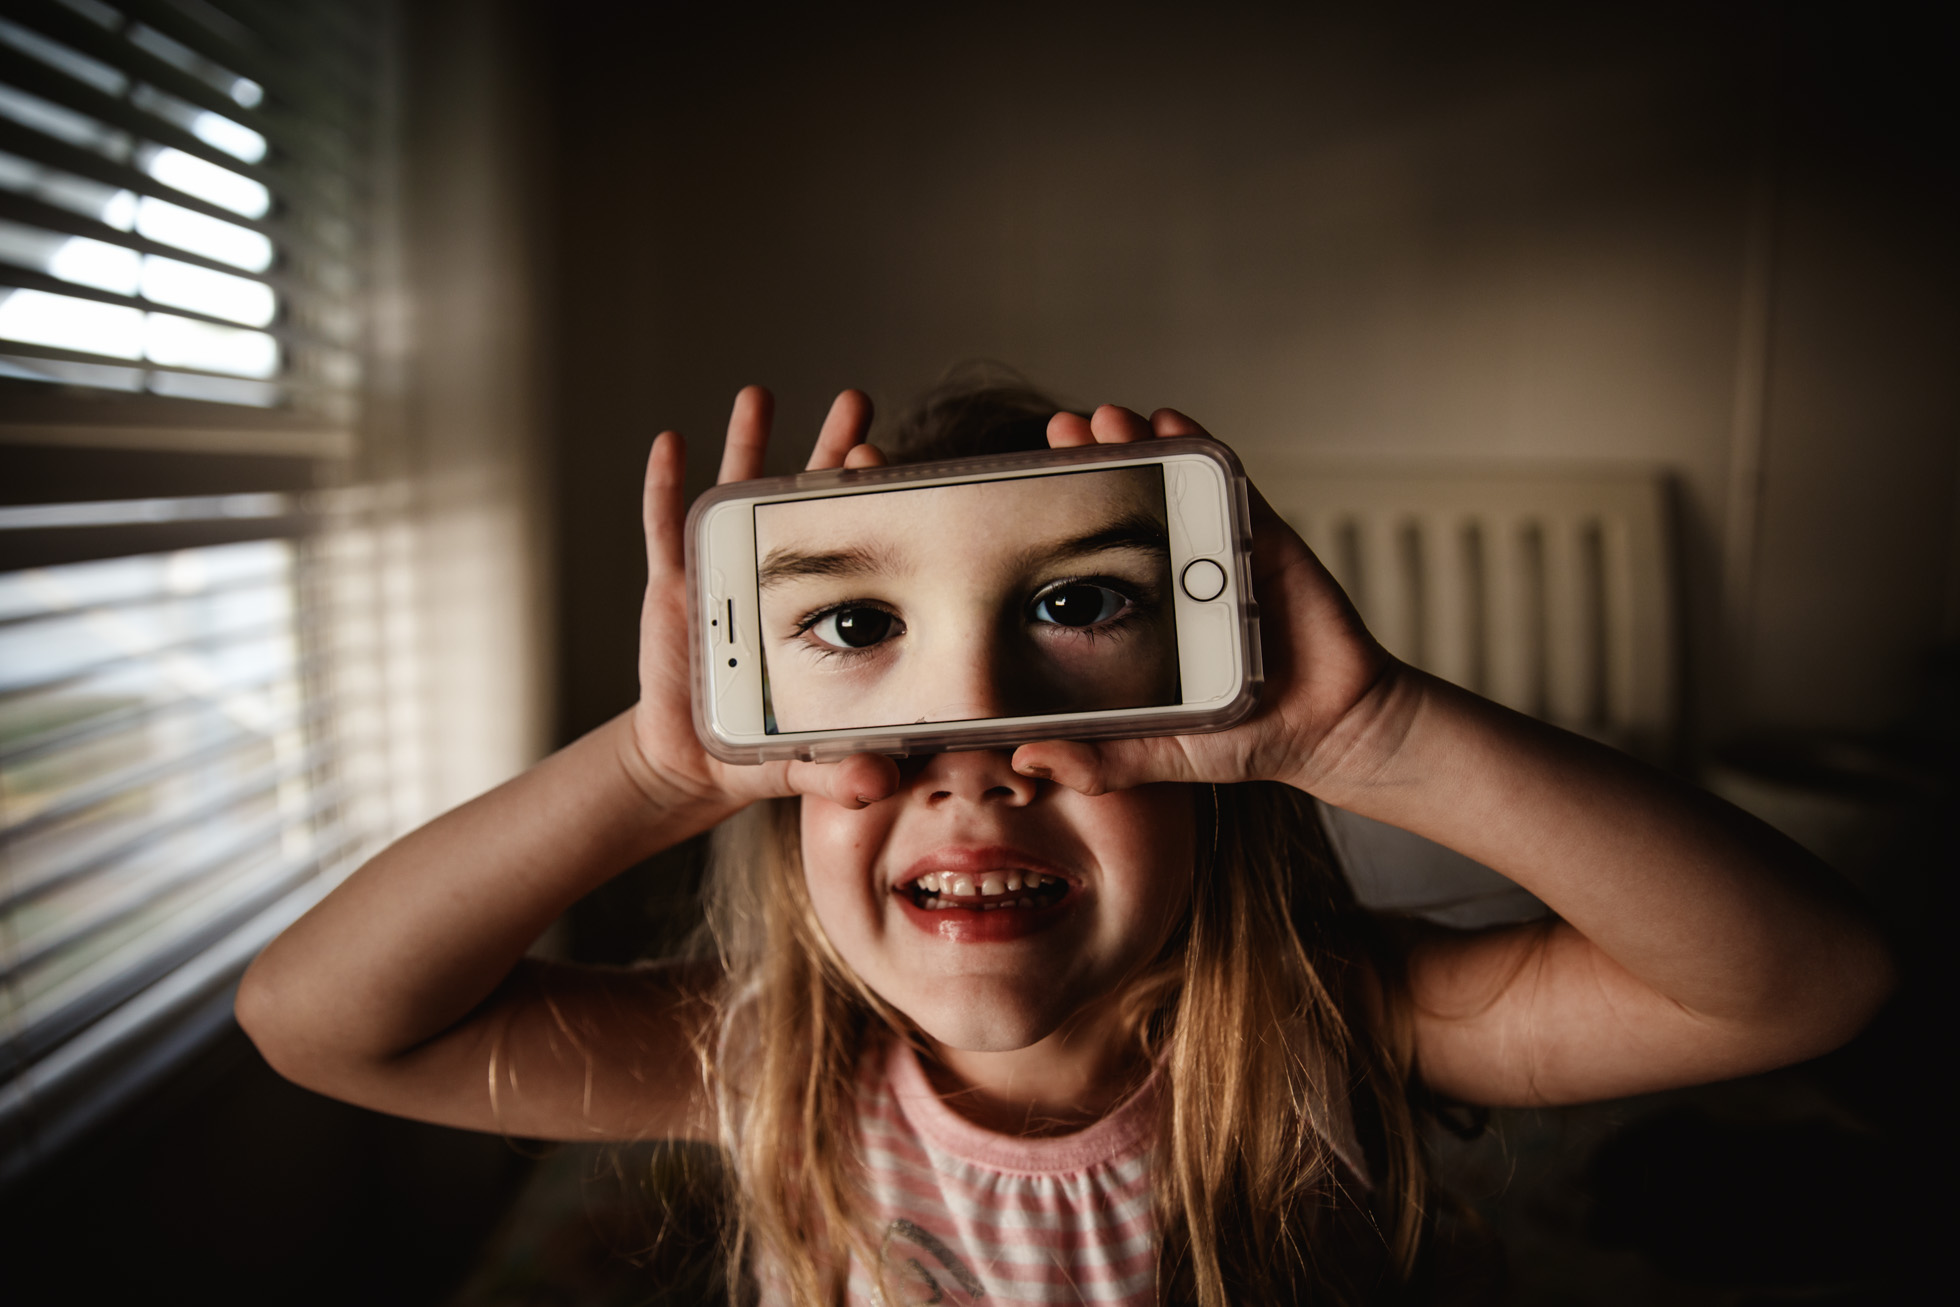 Smartphone photography apps, photo by Julie Audoux